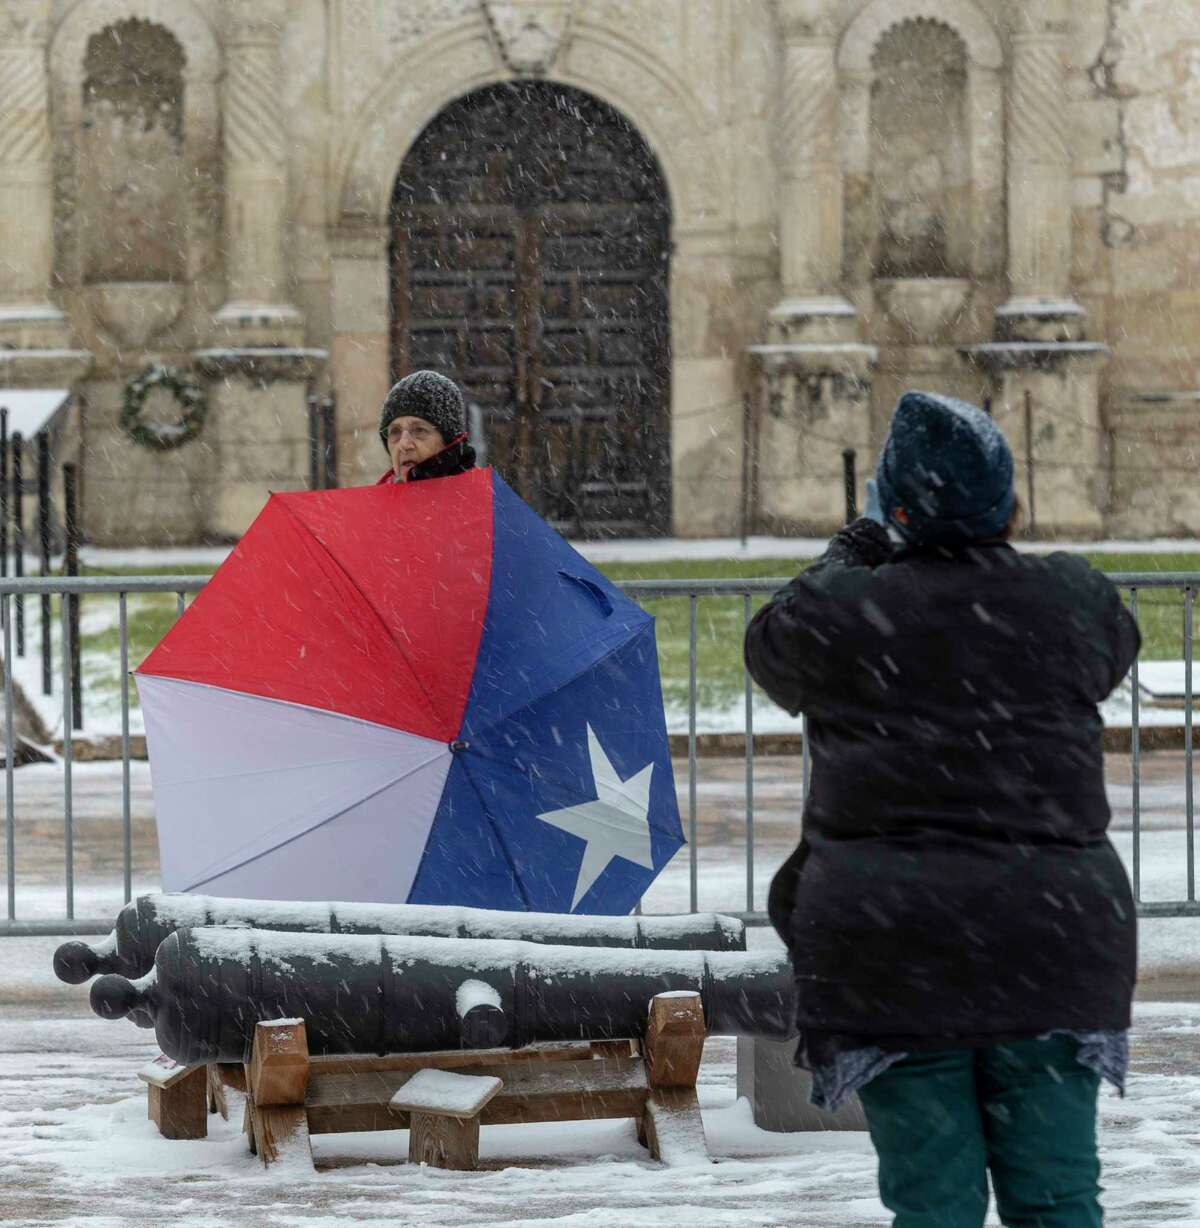 Ruth Madorsky takes a picture Thursday, Feb. 18, 2021, in front of the Alamo as snow returns to San Antonio.